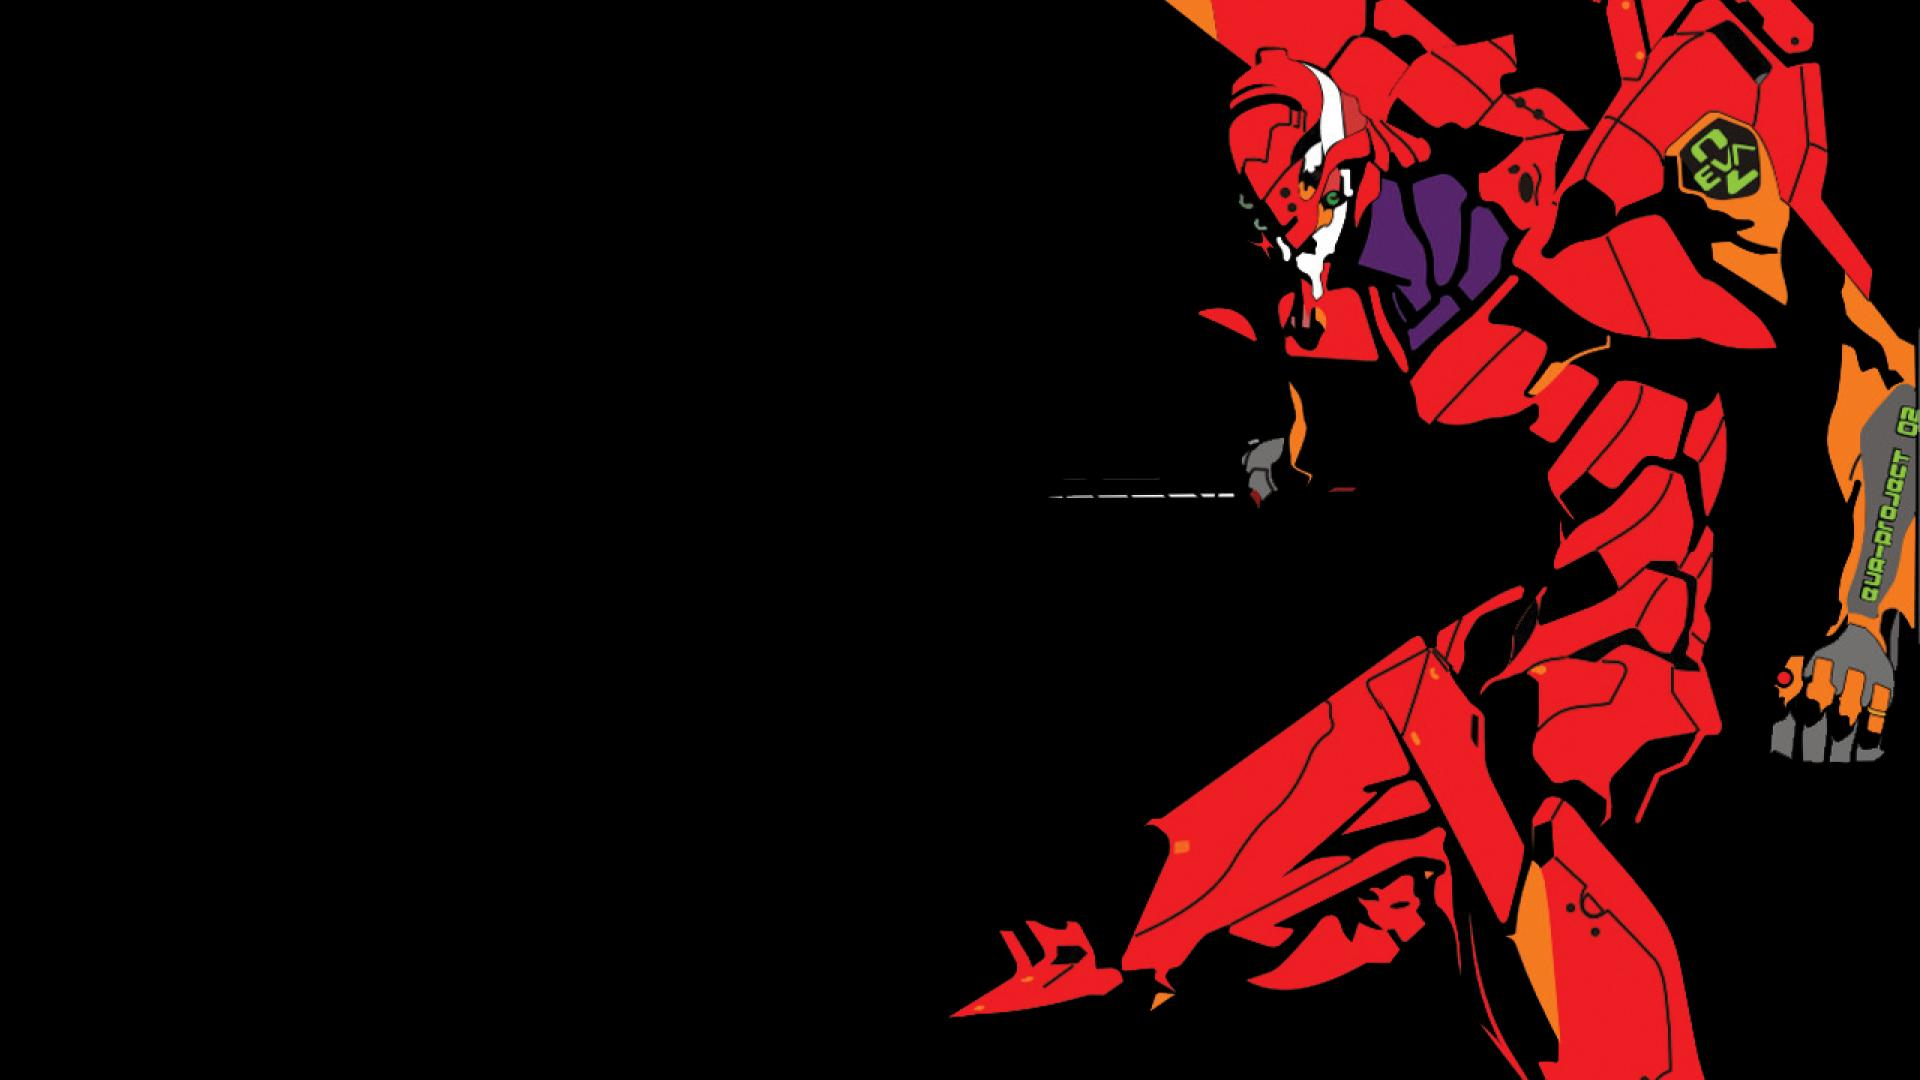 1440x900 Image Source Evangelion Wallpaper 1080p WallpaperSafari